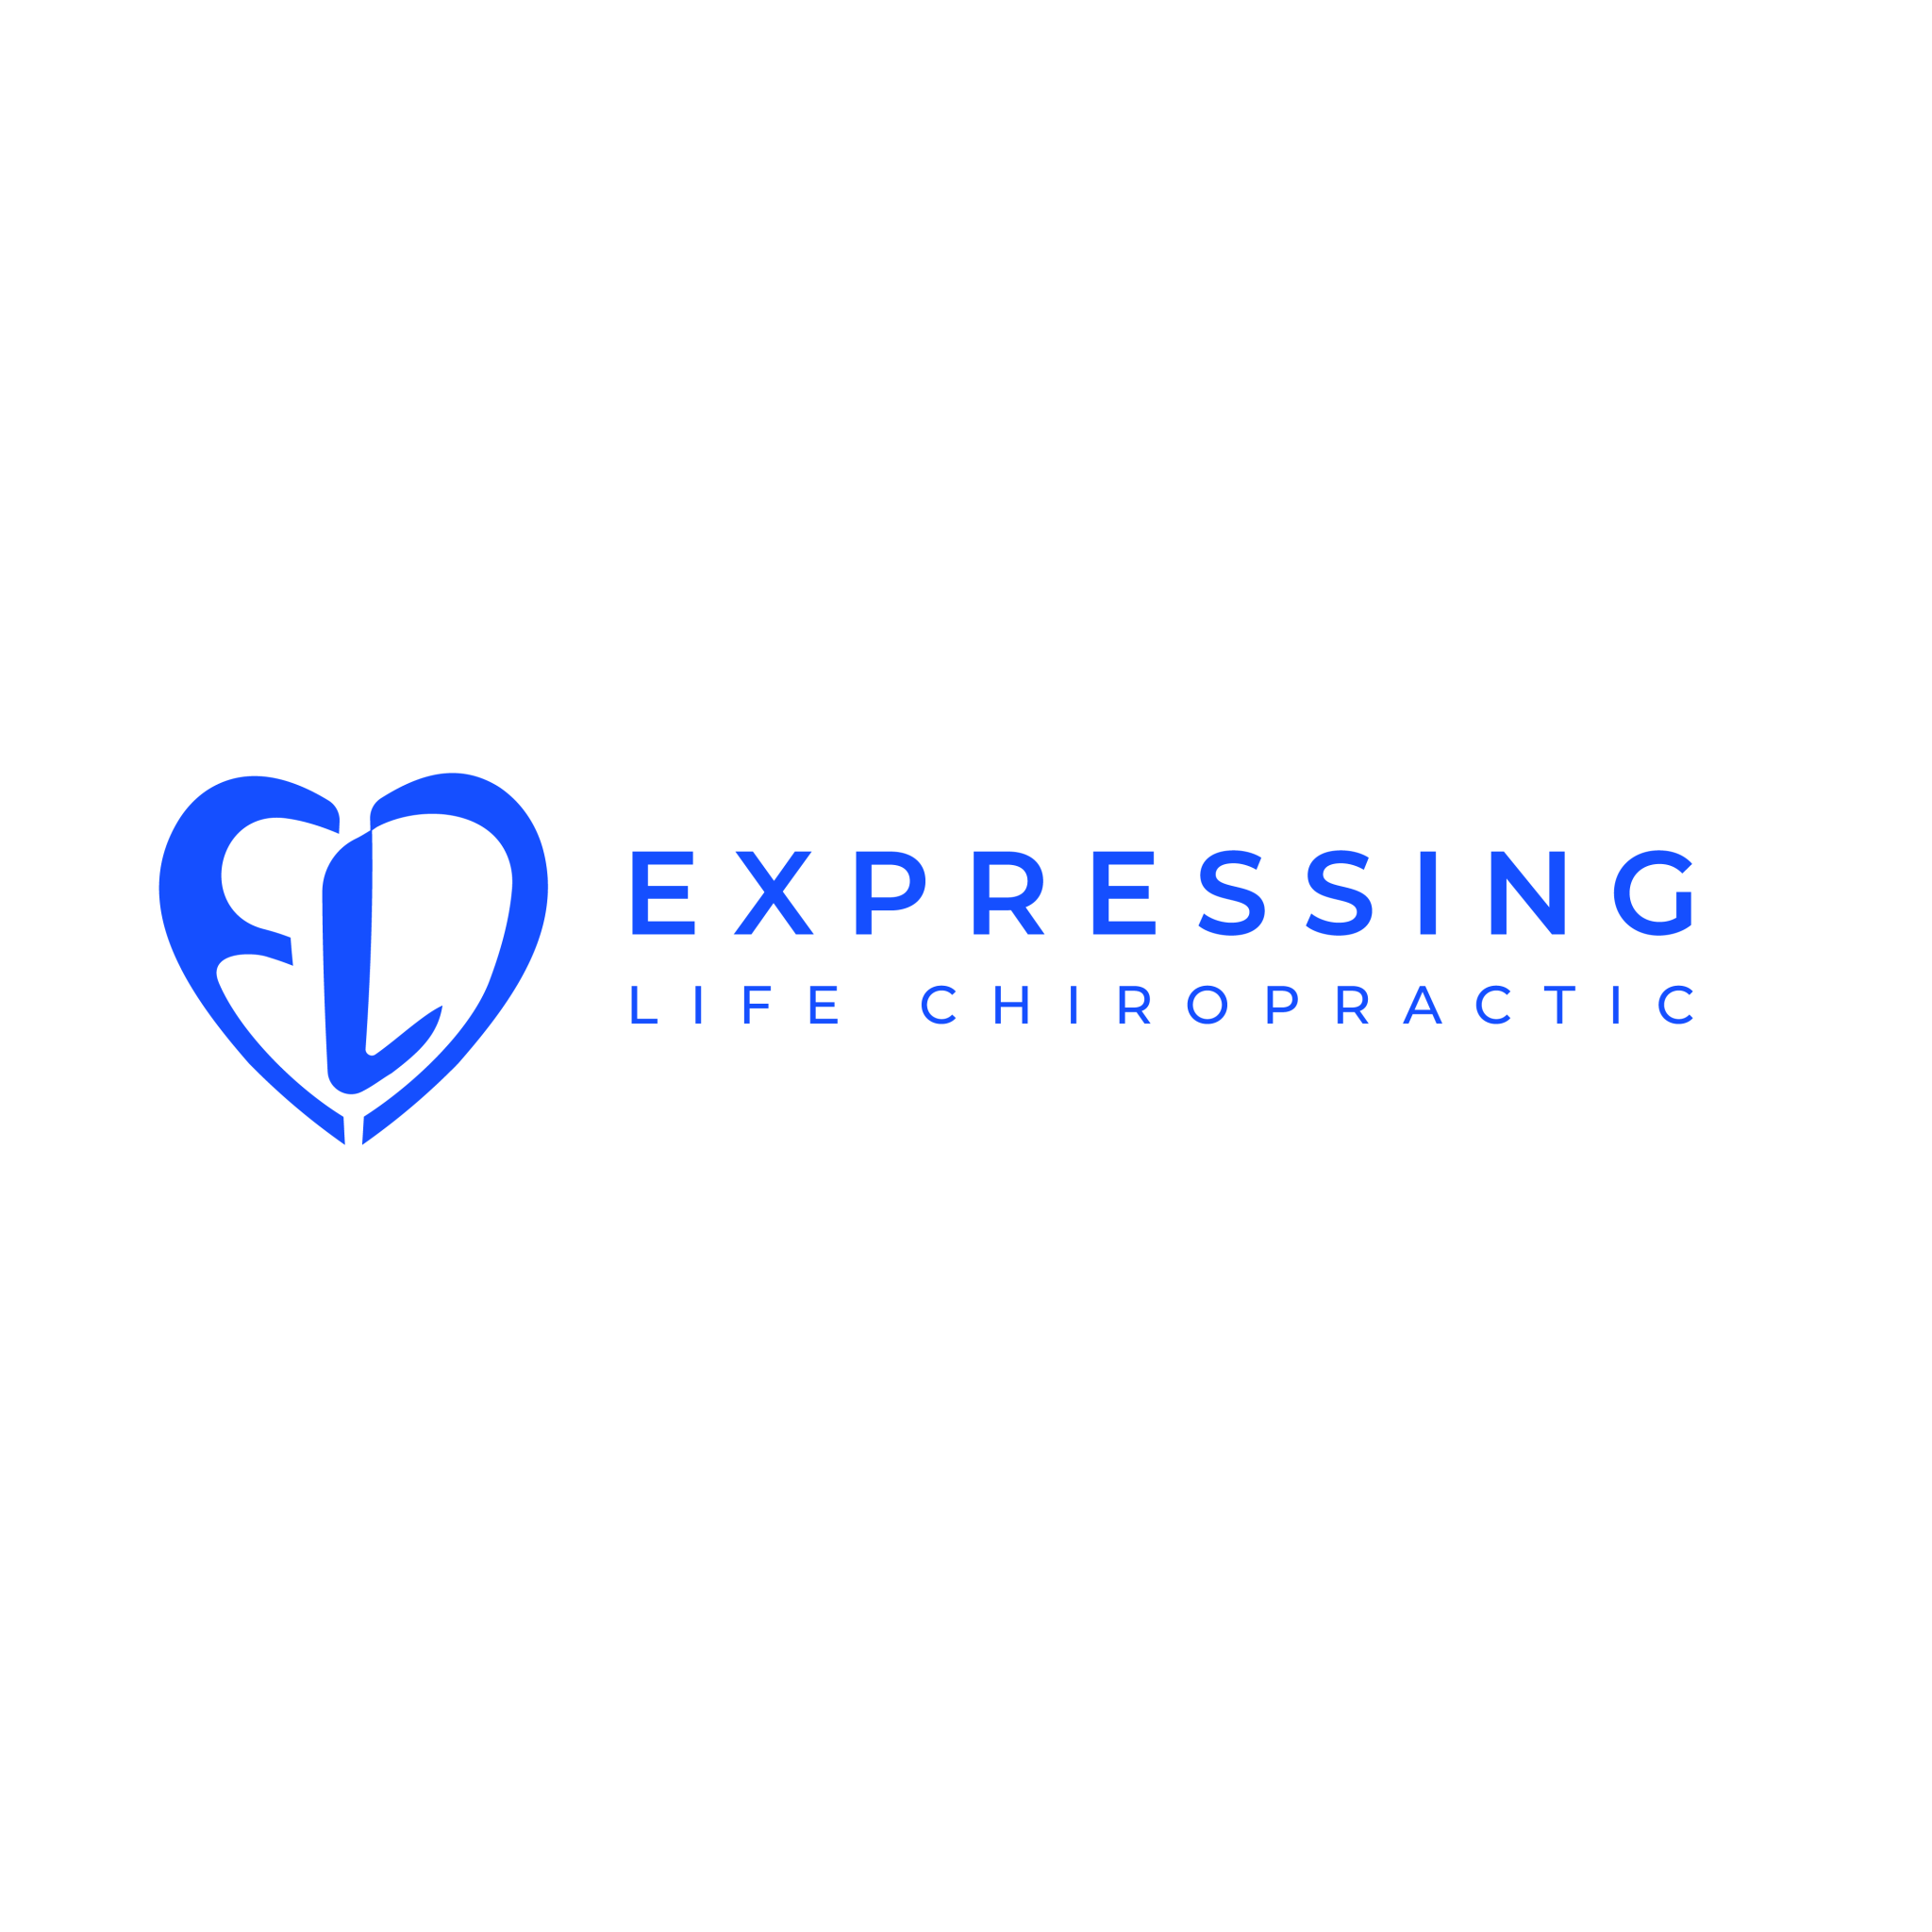 Expressing Life Chiropractic